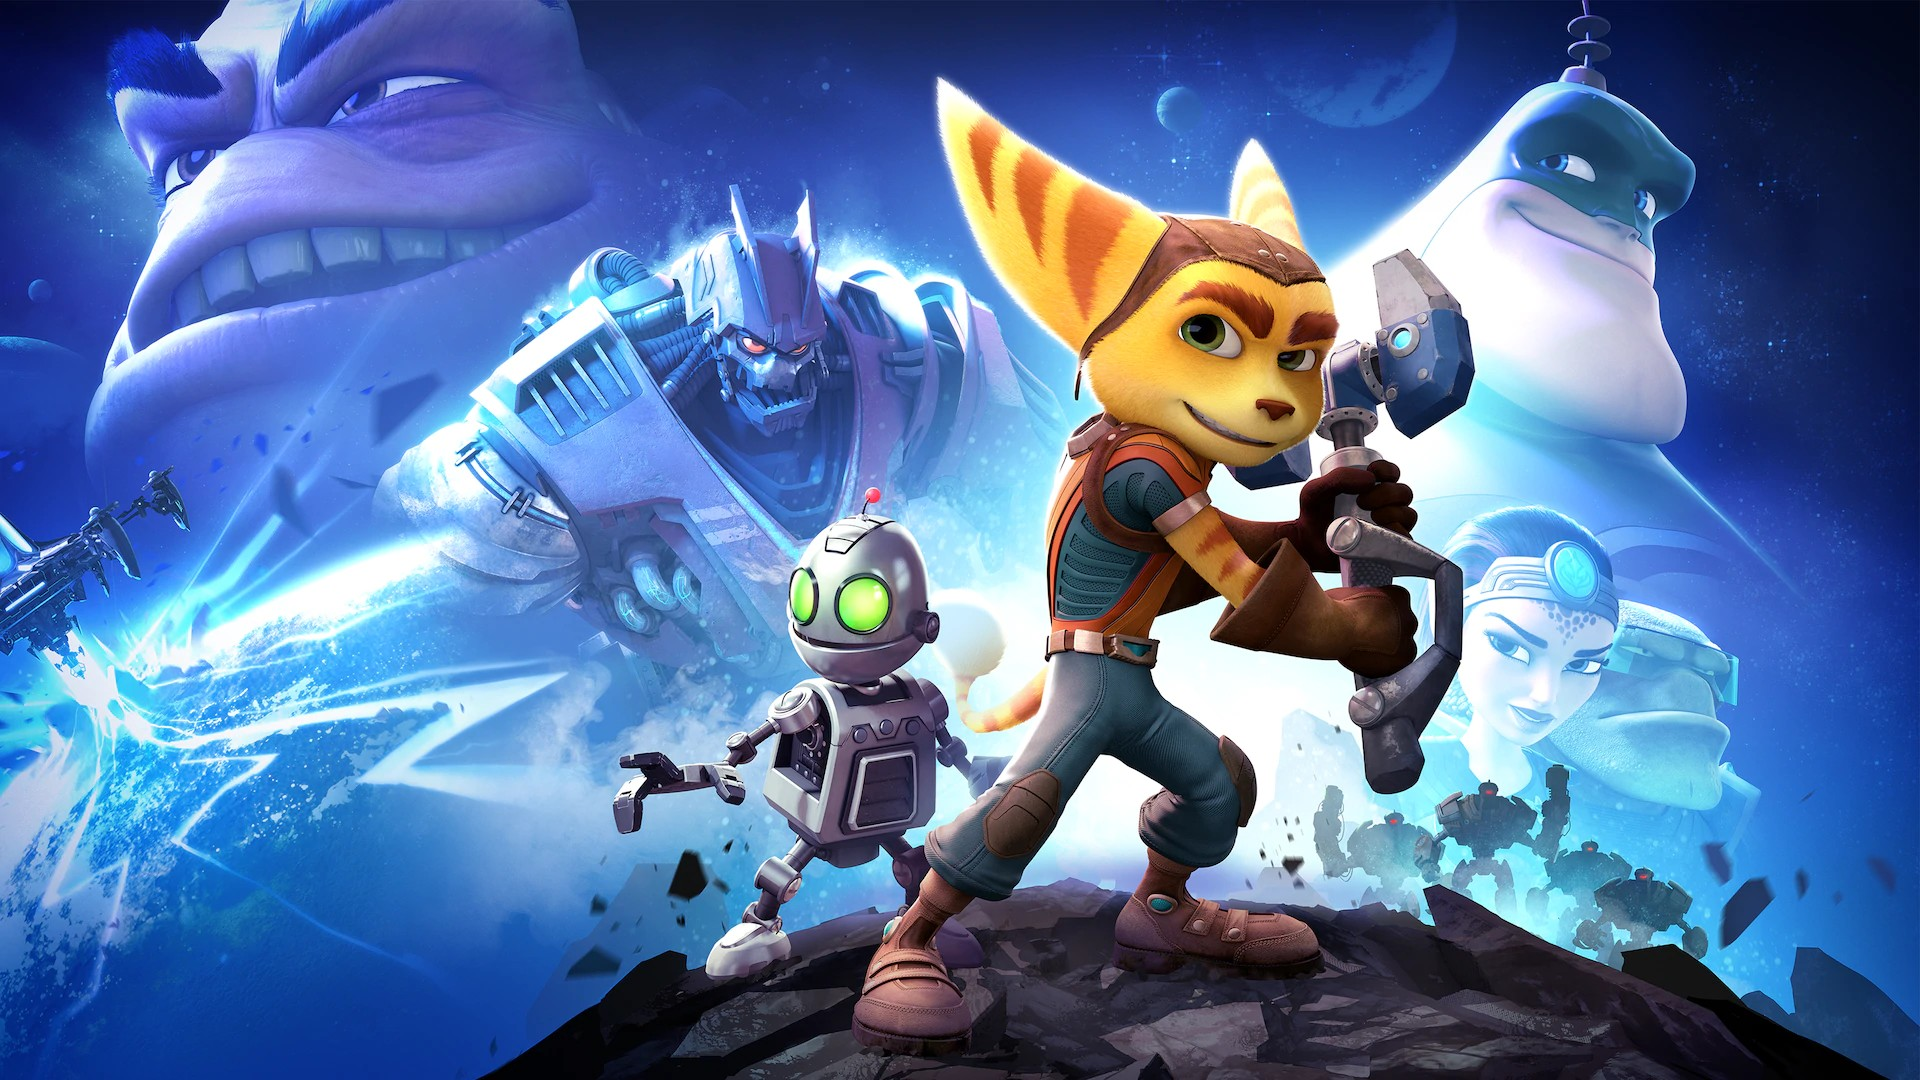 Ratchet & Clank: the PS4 game will be offered during the month of March